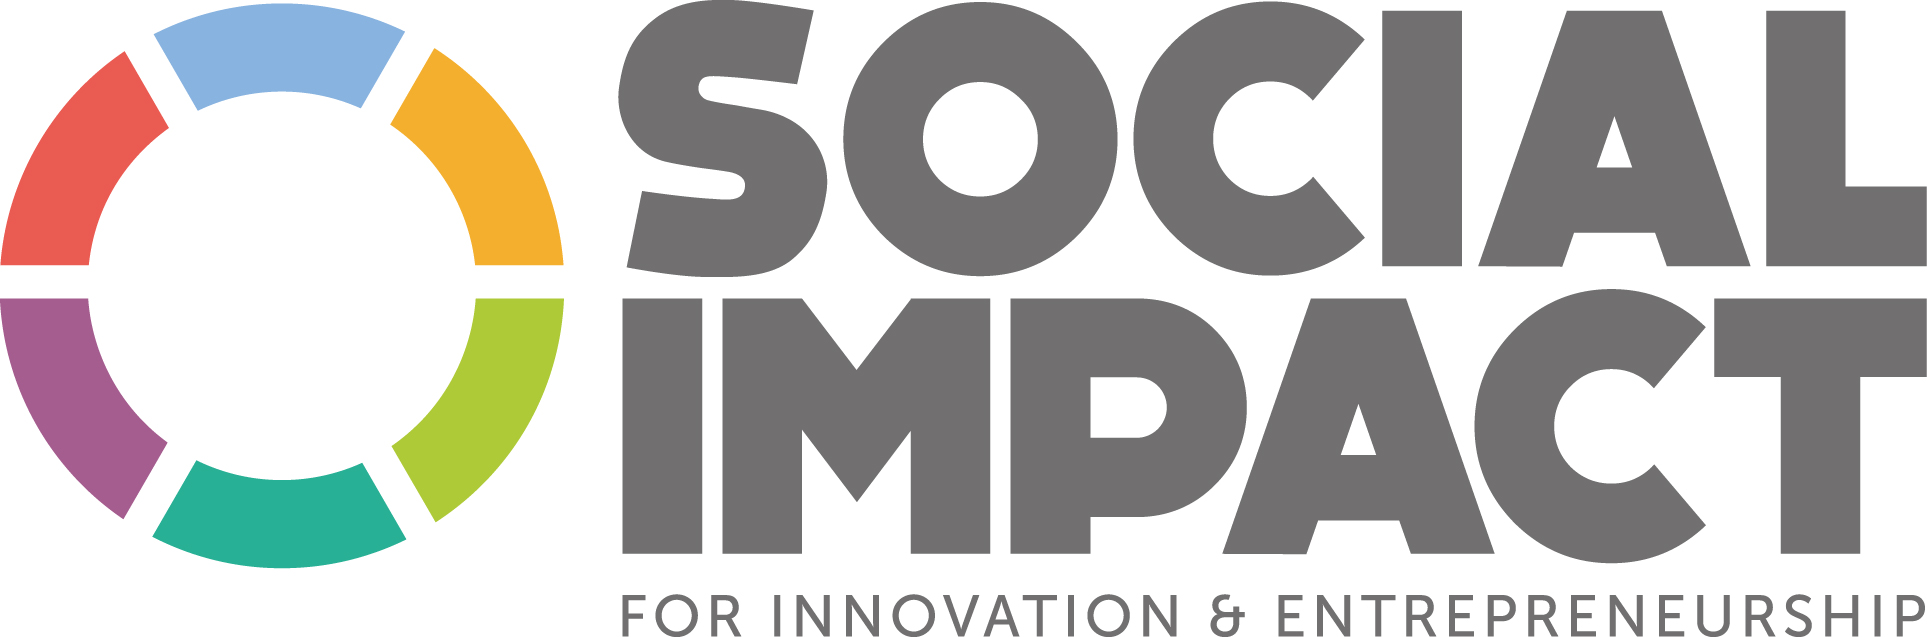 social_impact_logo_screen.jpg